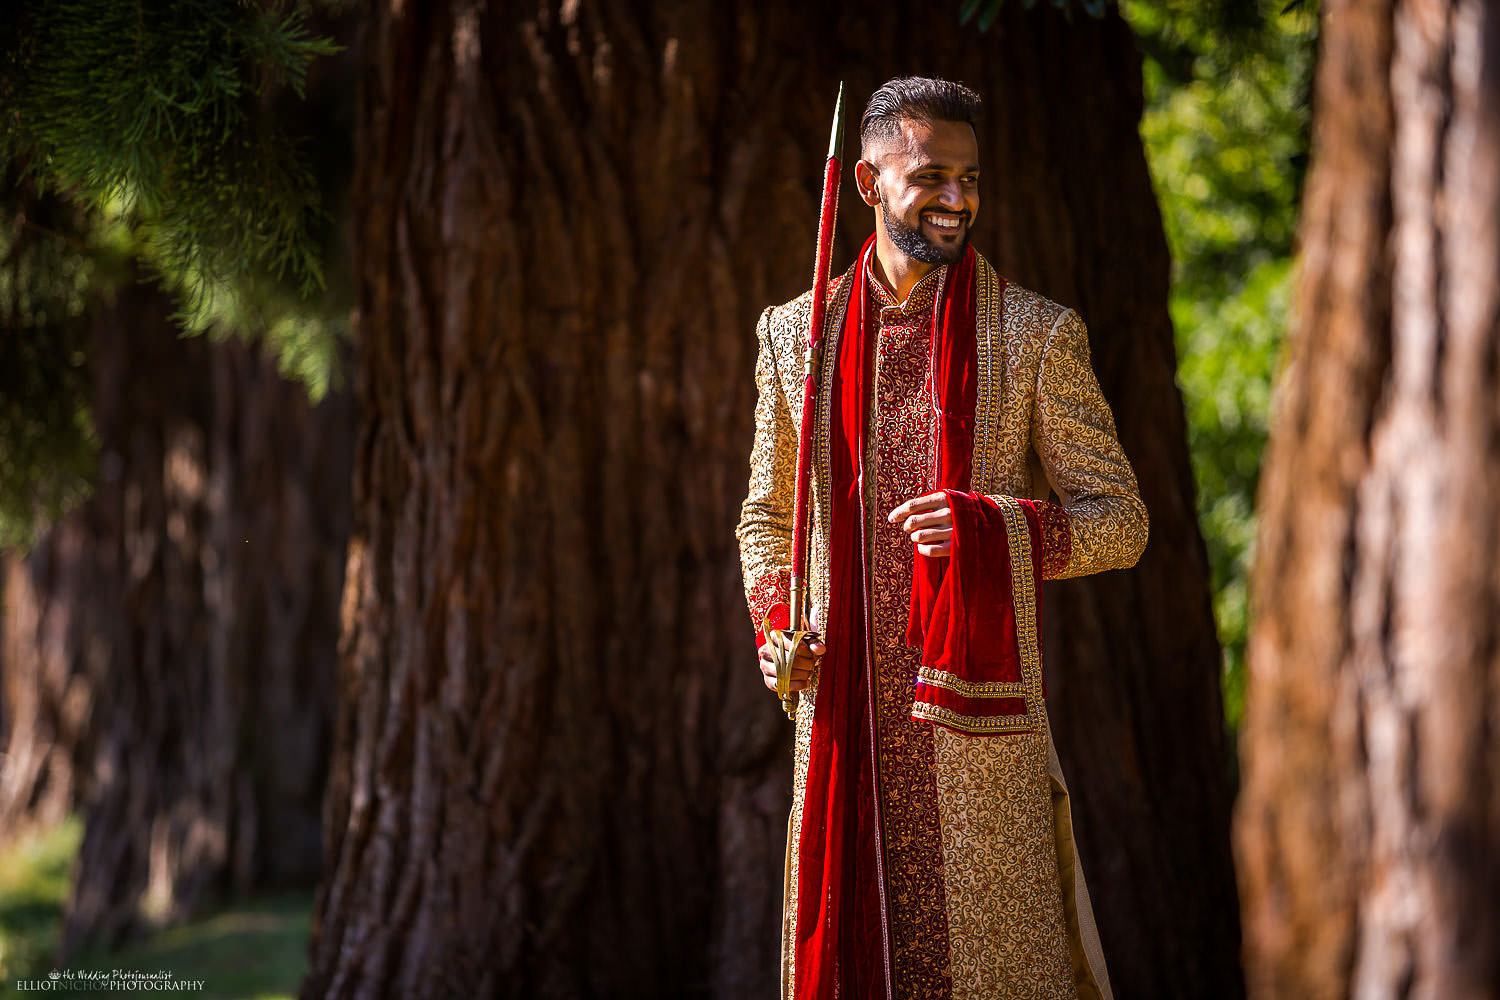 Portrait of Indian Groom in the grounds of Chateau Impney, England. Photo by North East based wedding photographer Elliot Nichol.